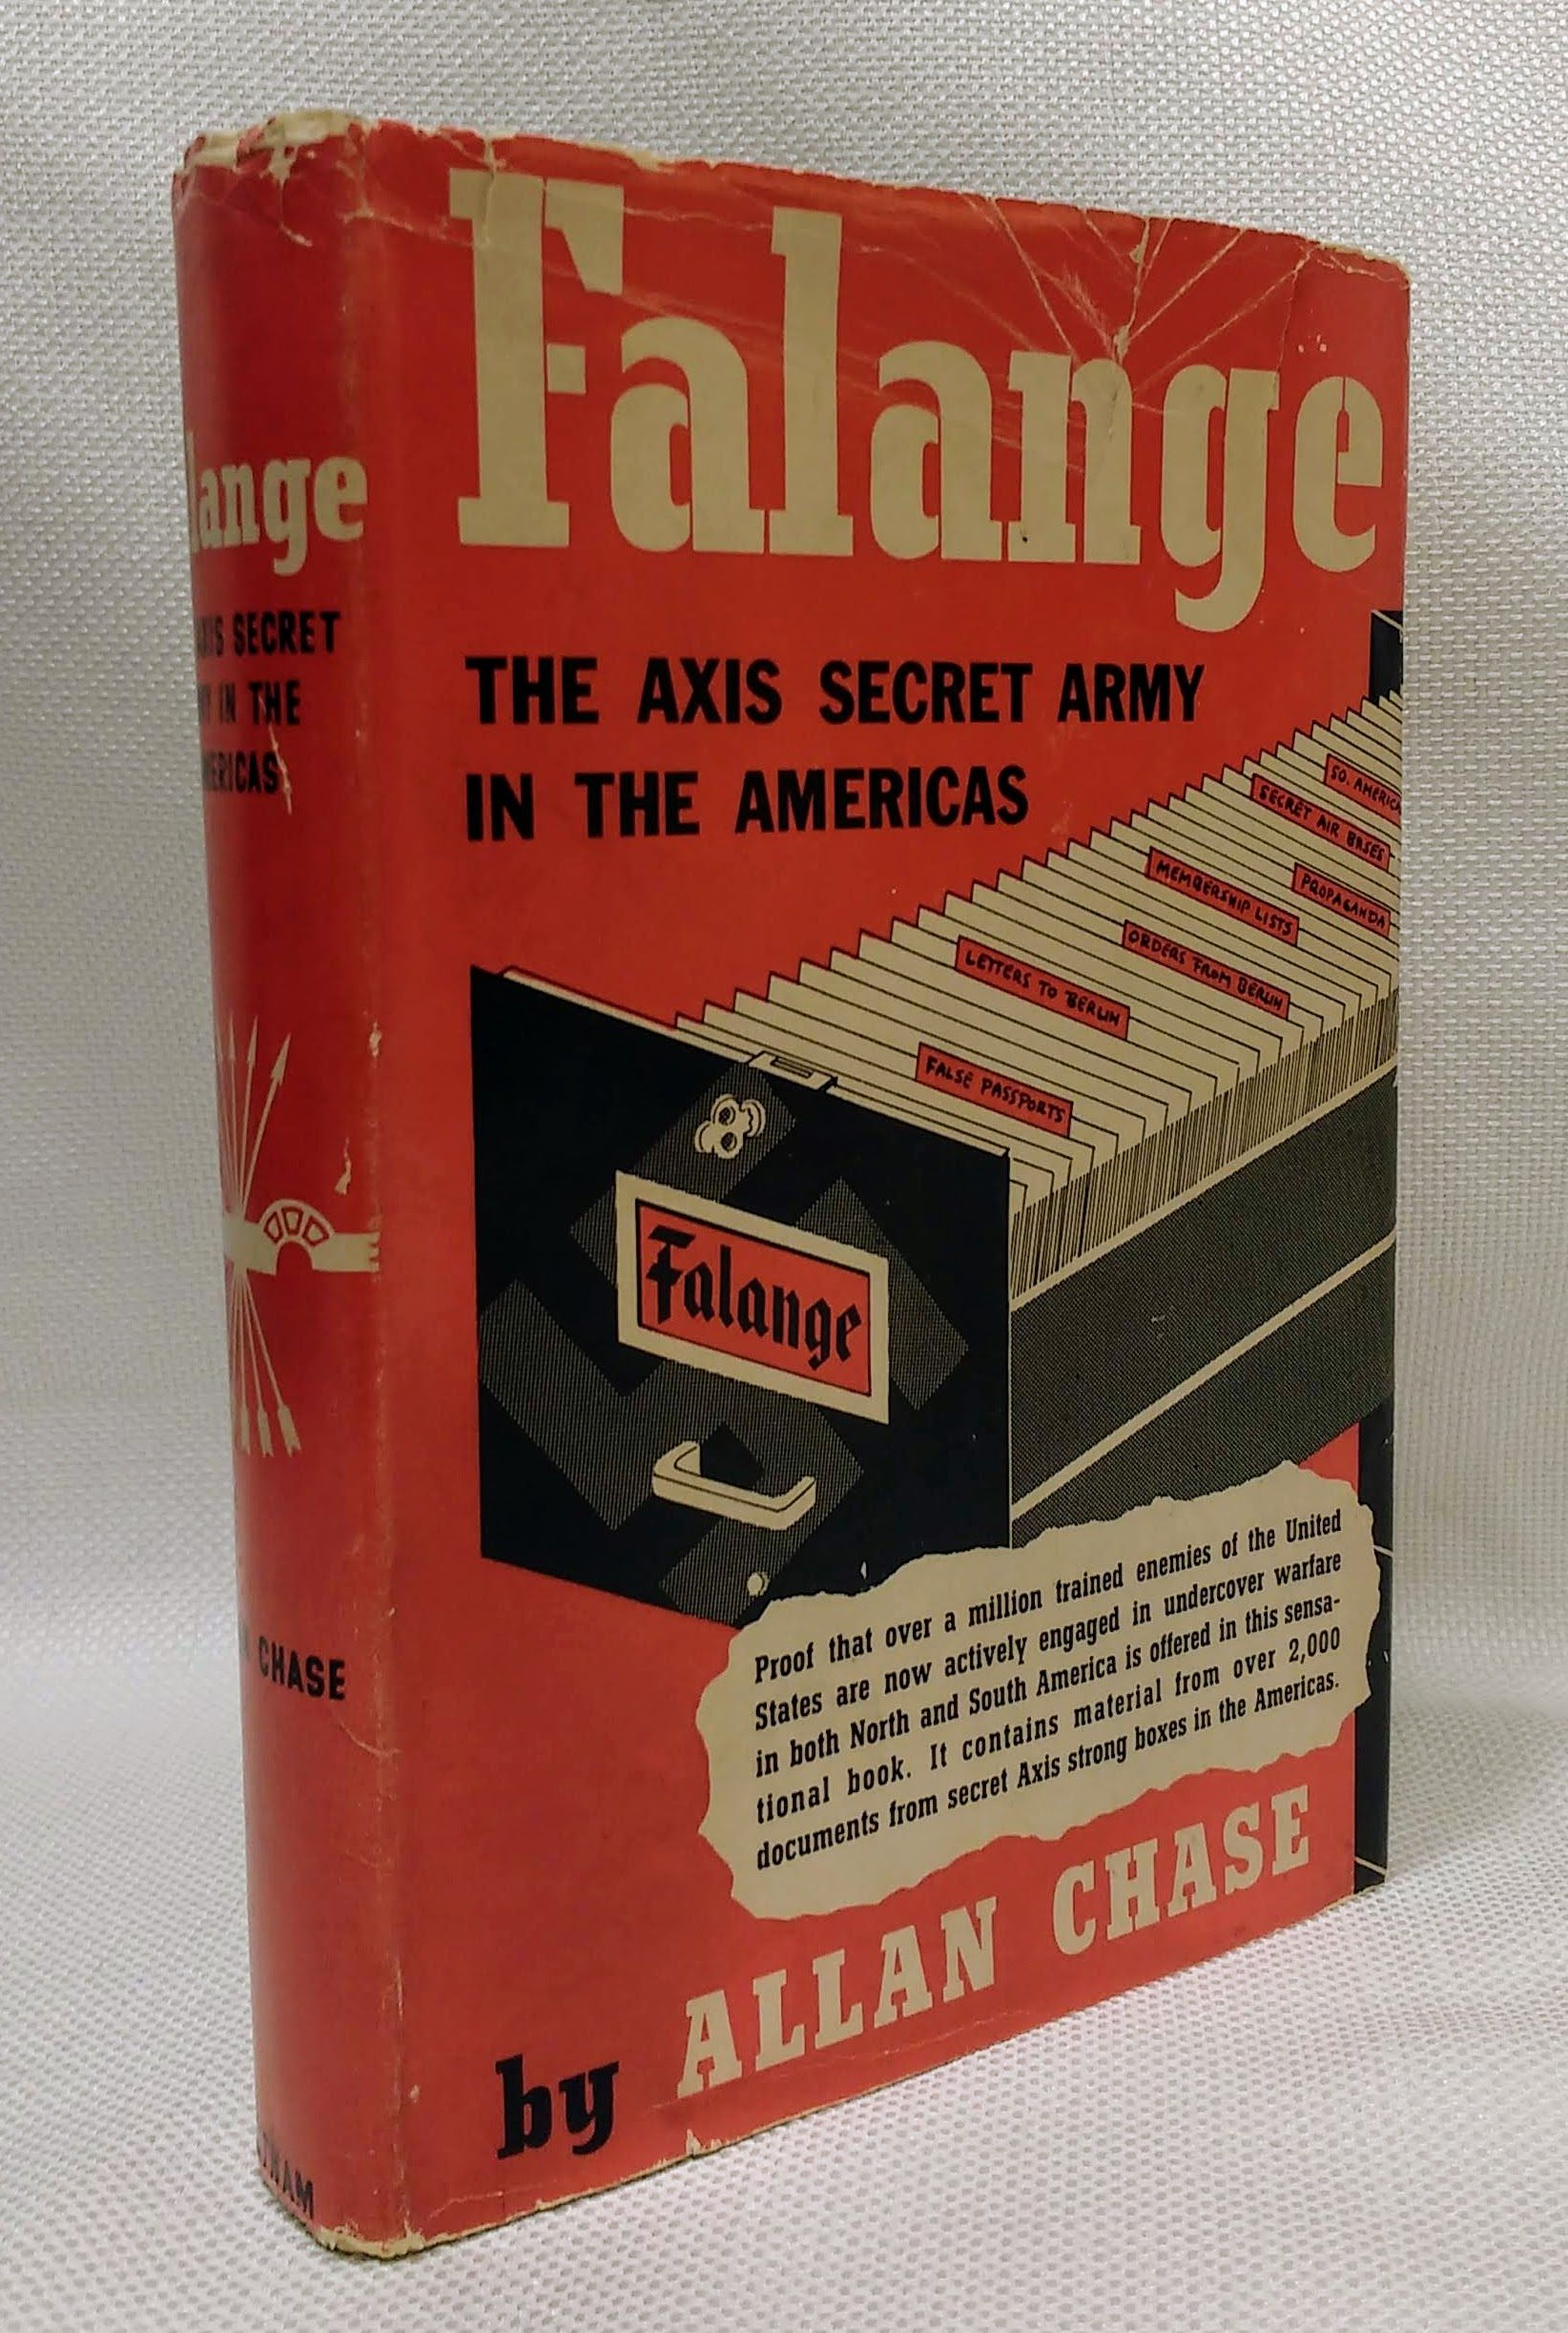 Falange: The Axis Secret Army in the Americas, Chase, Allan